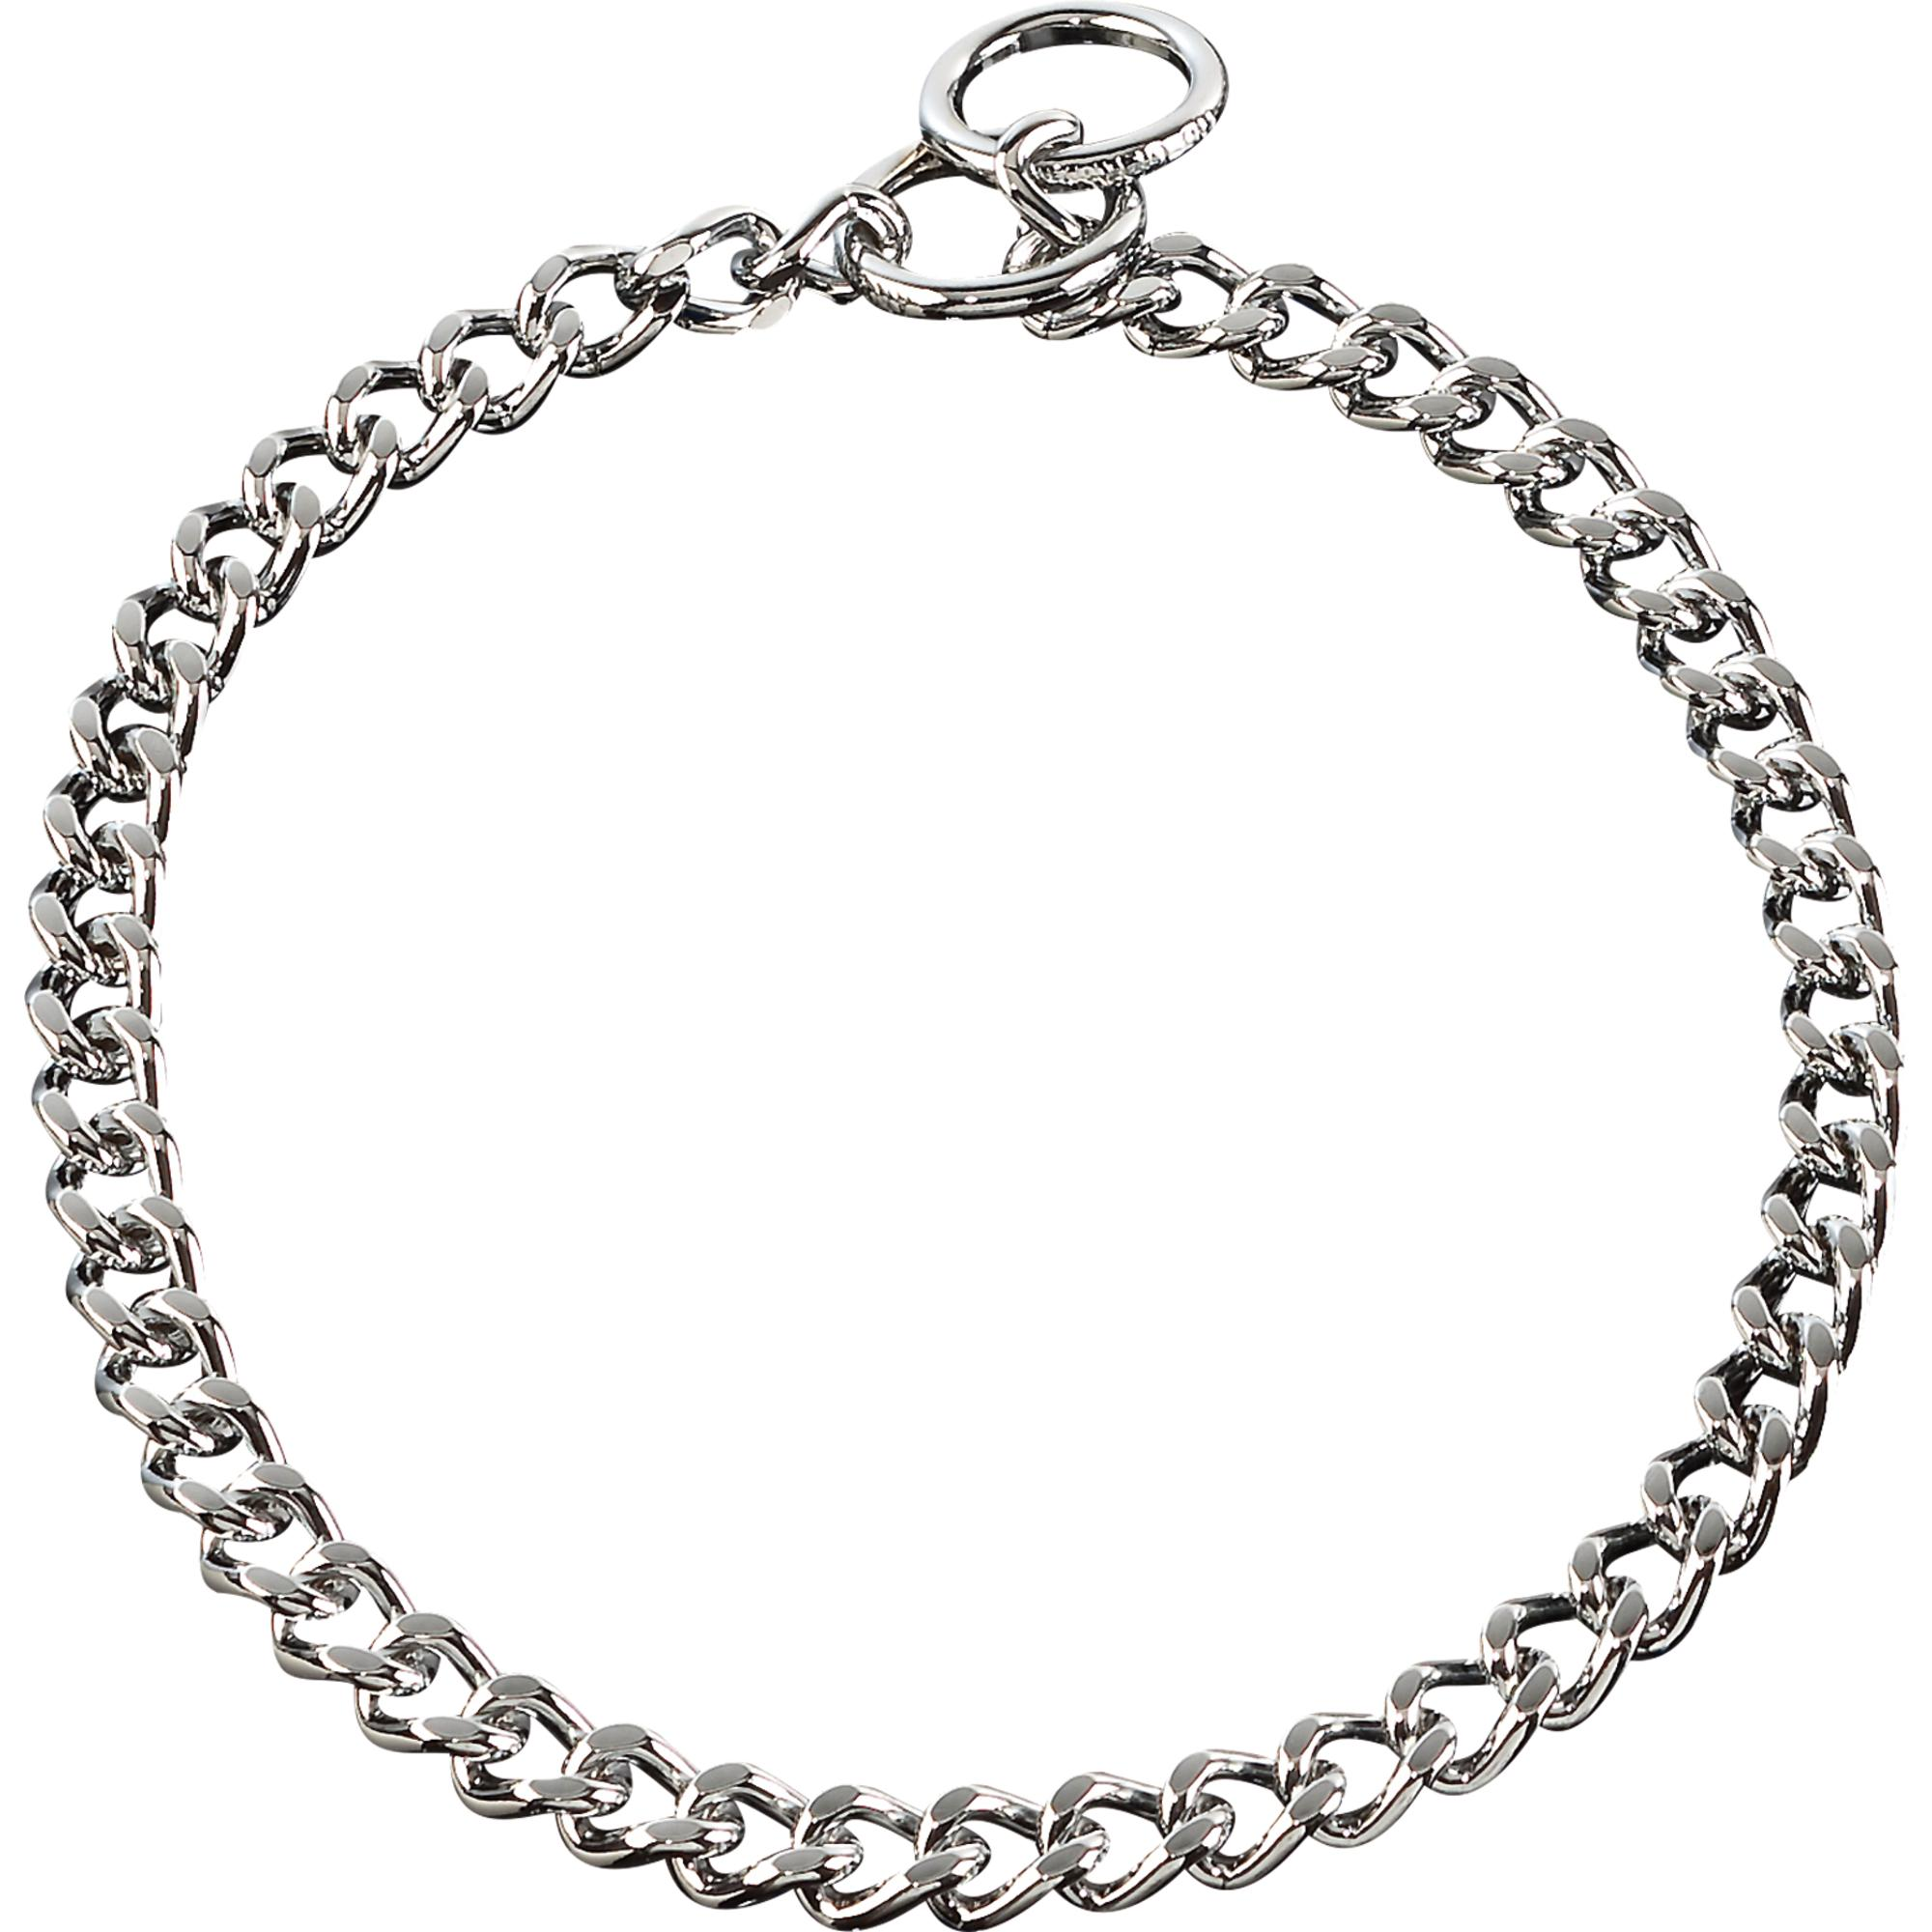 Collar Flat Polished Narrow Links Steel Chrome Plated